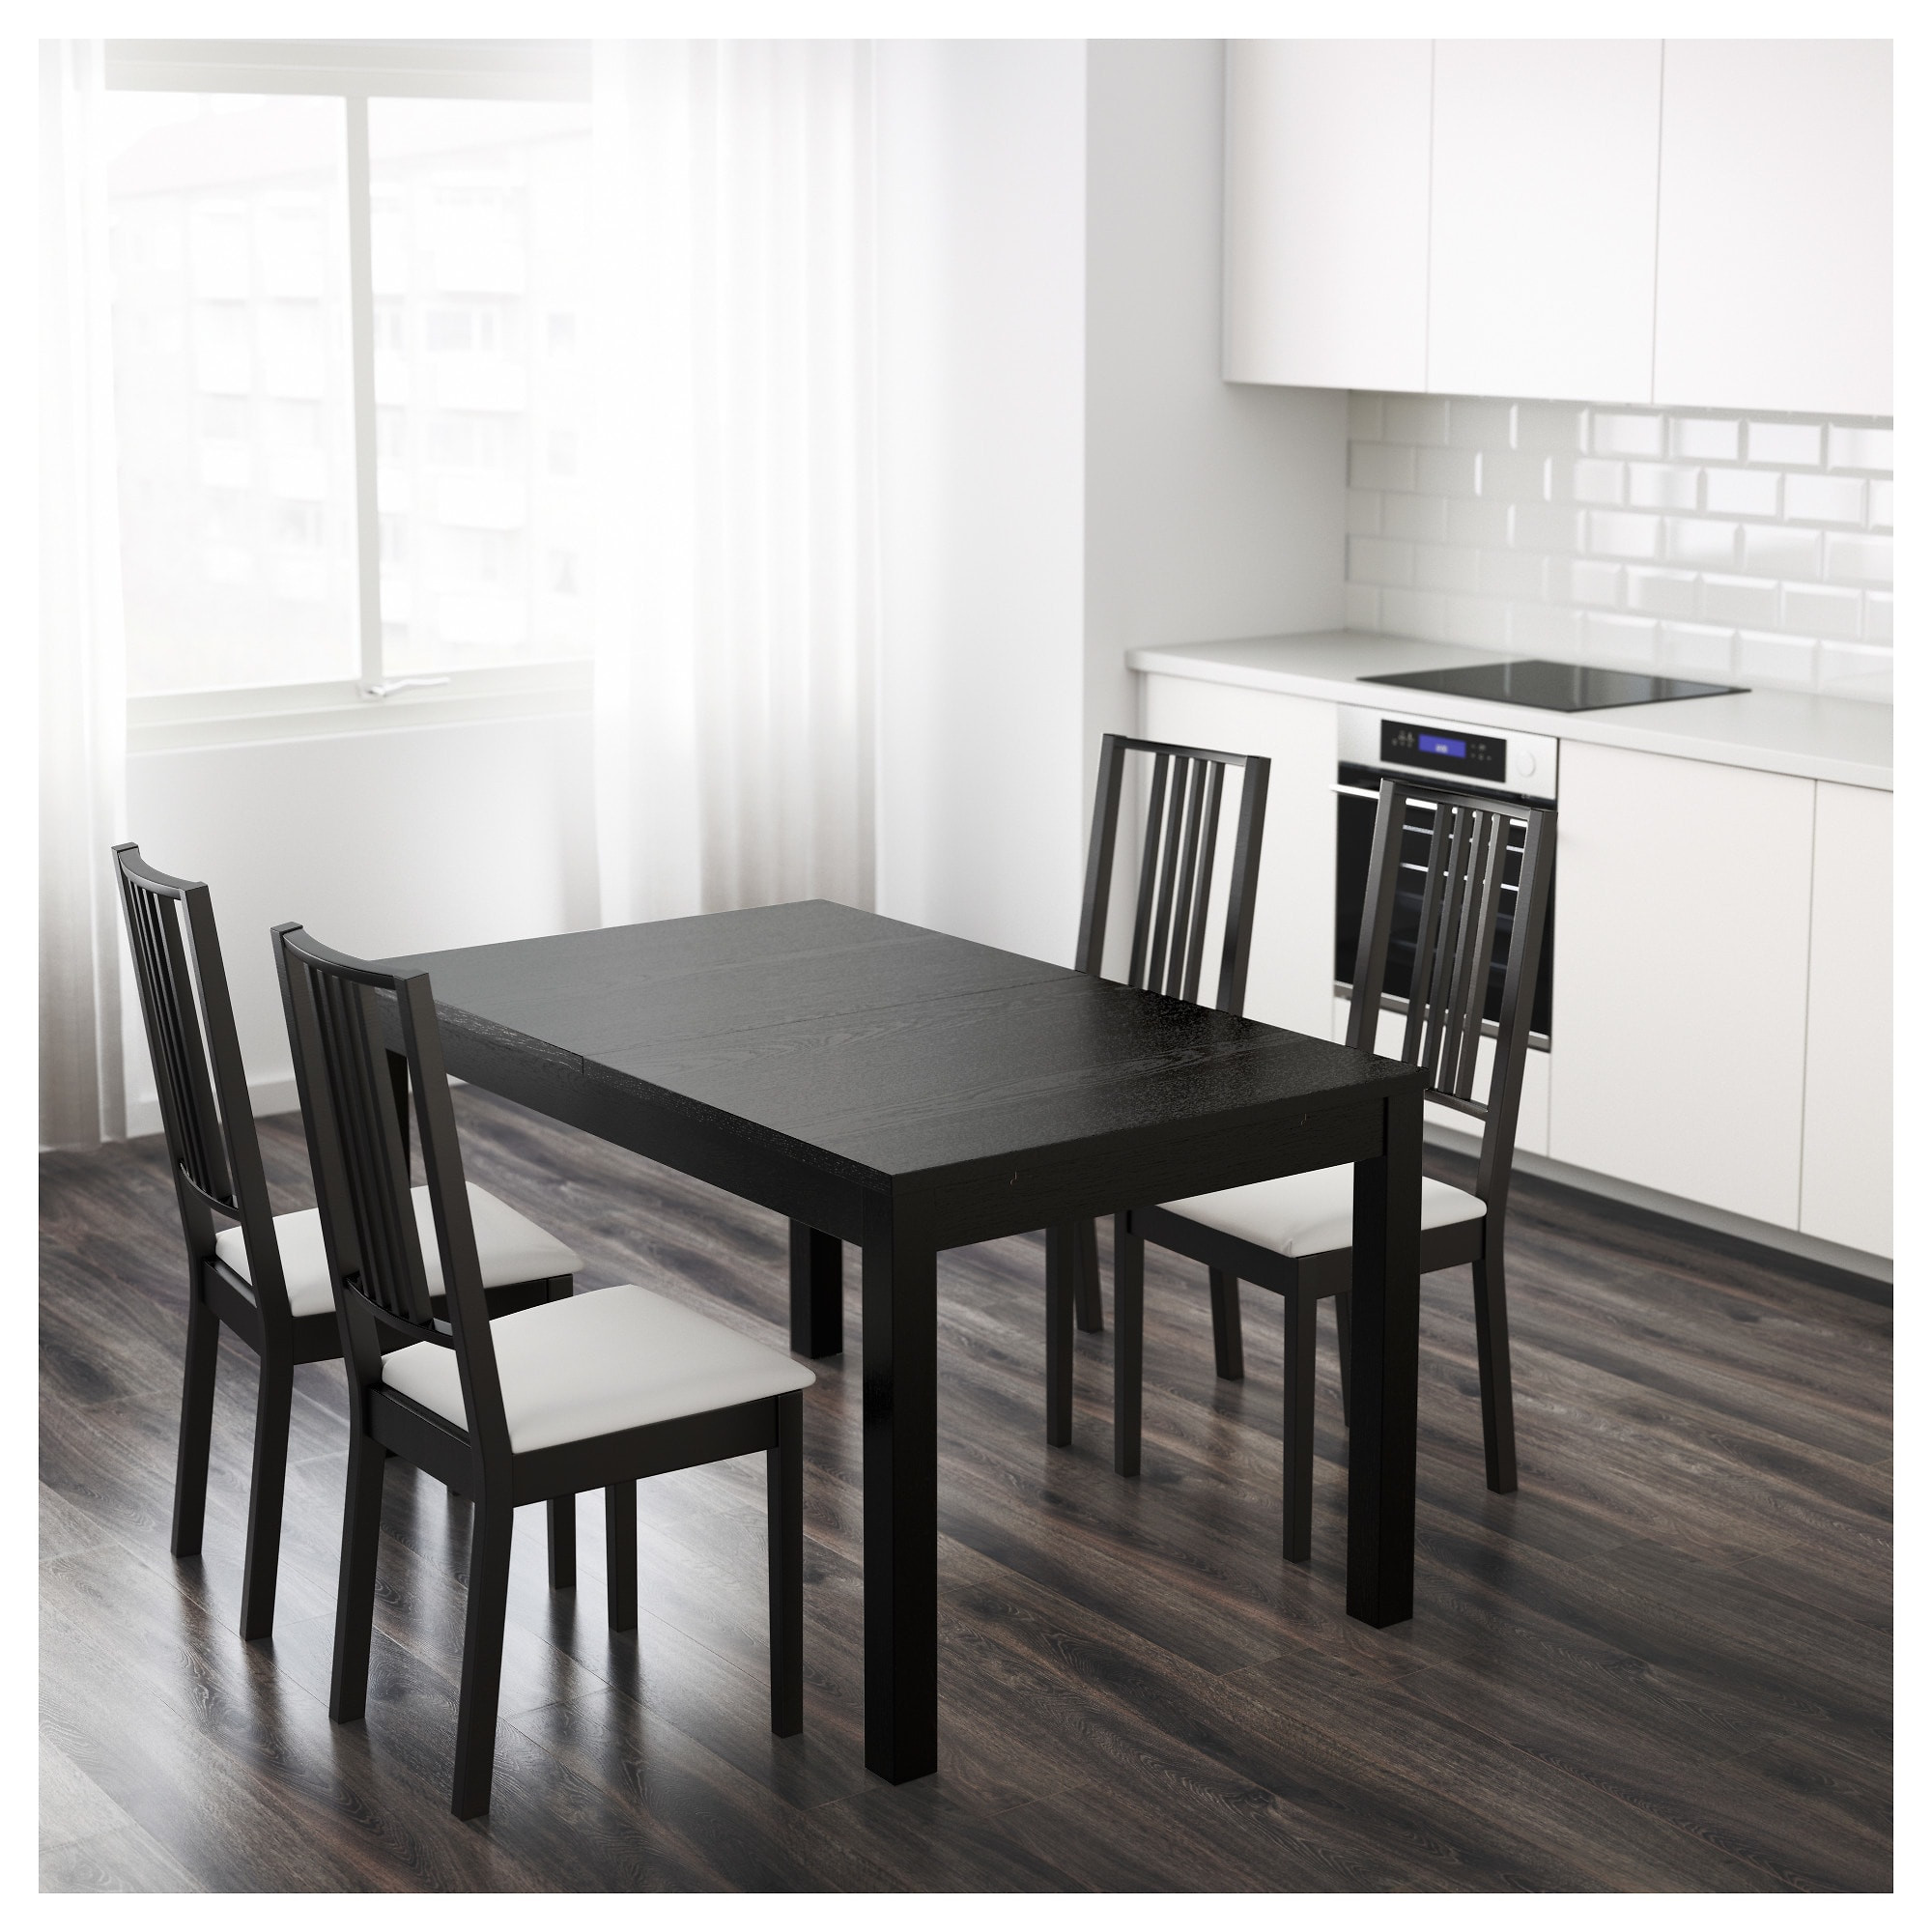 Best ideas about Ikea Dining Room Tables . Save or Pin BJURSTA Extendable table Brown black 140 180 220 x 84 cm Now.